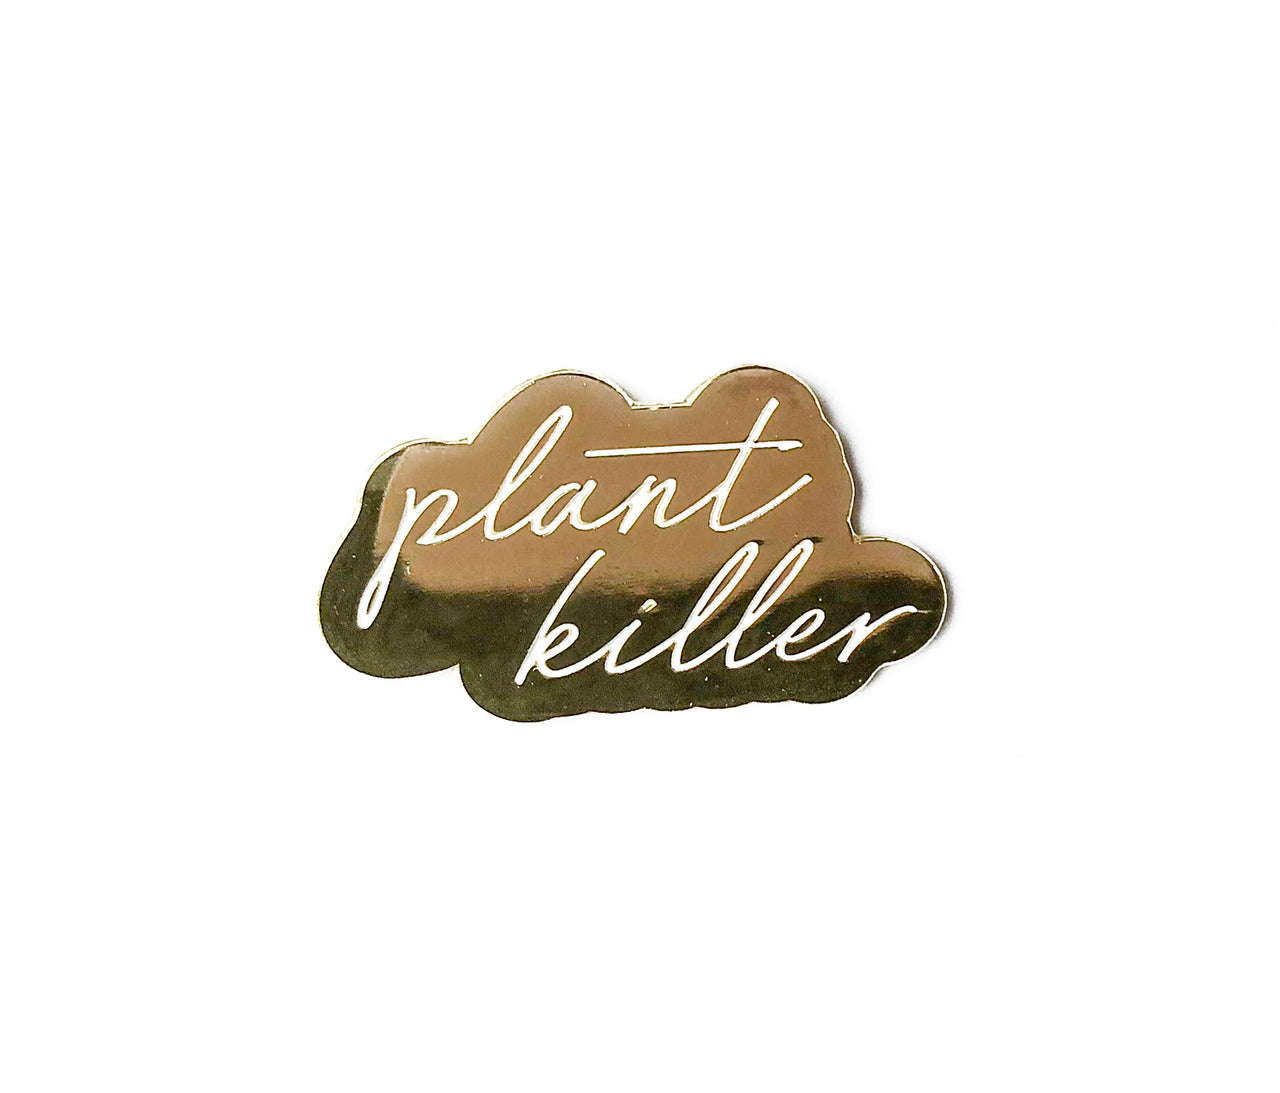 Plant Killer Soft Enamel Pin - Brown Paper Fox